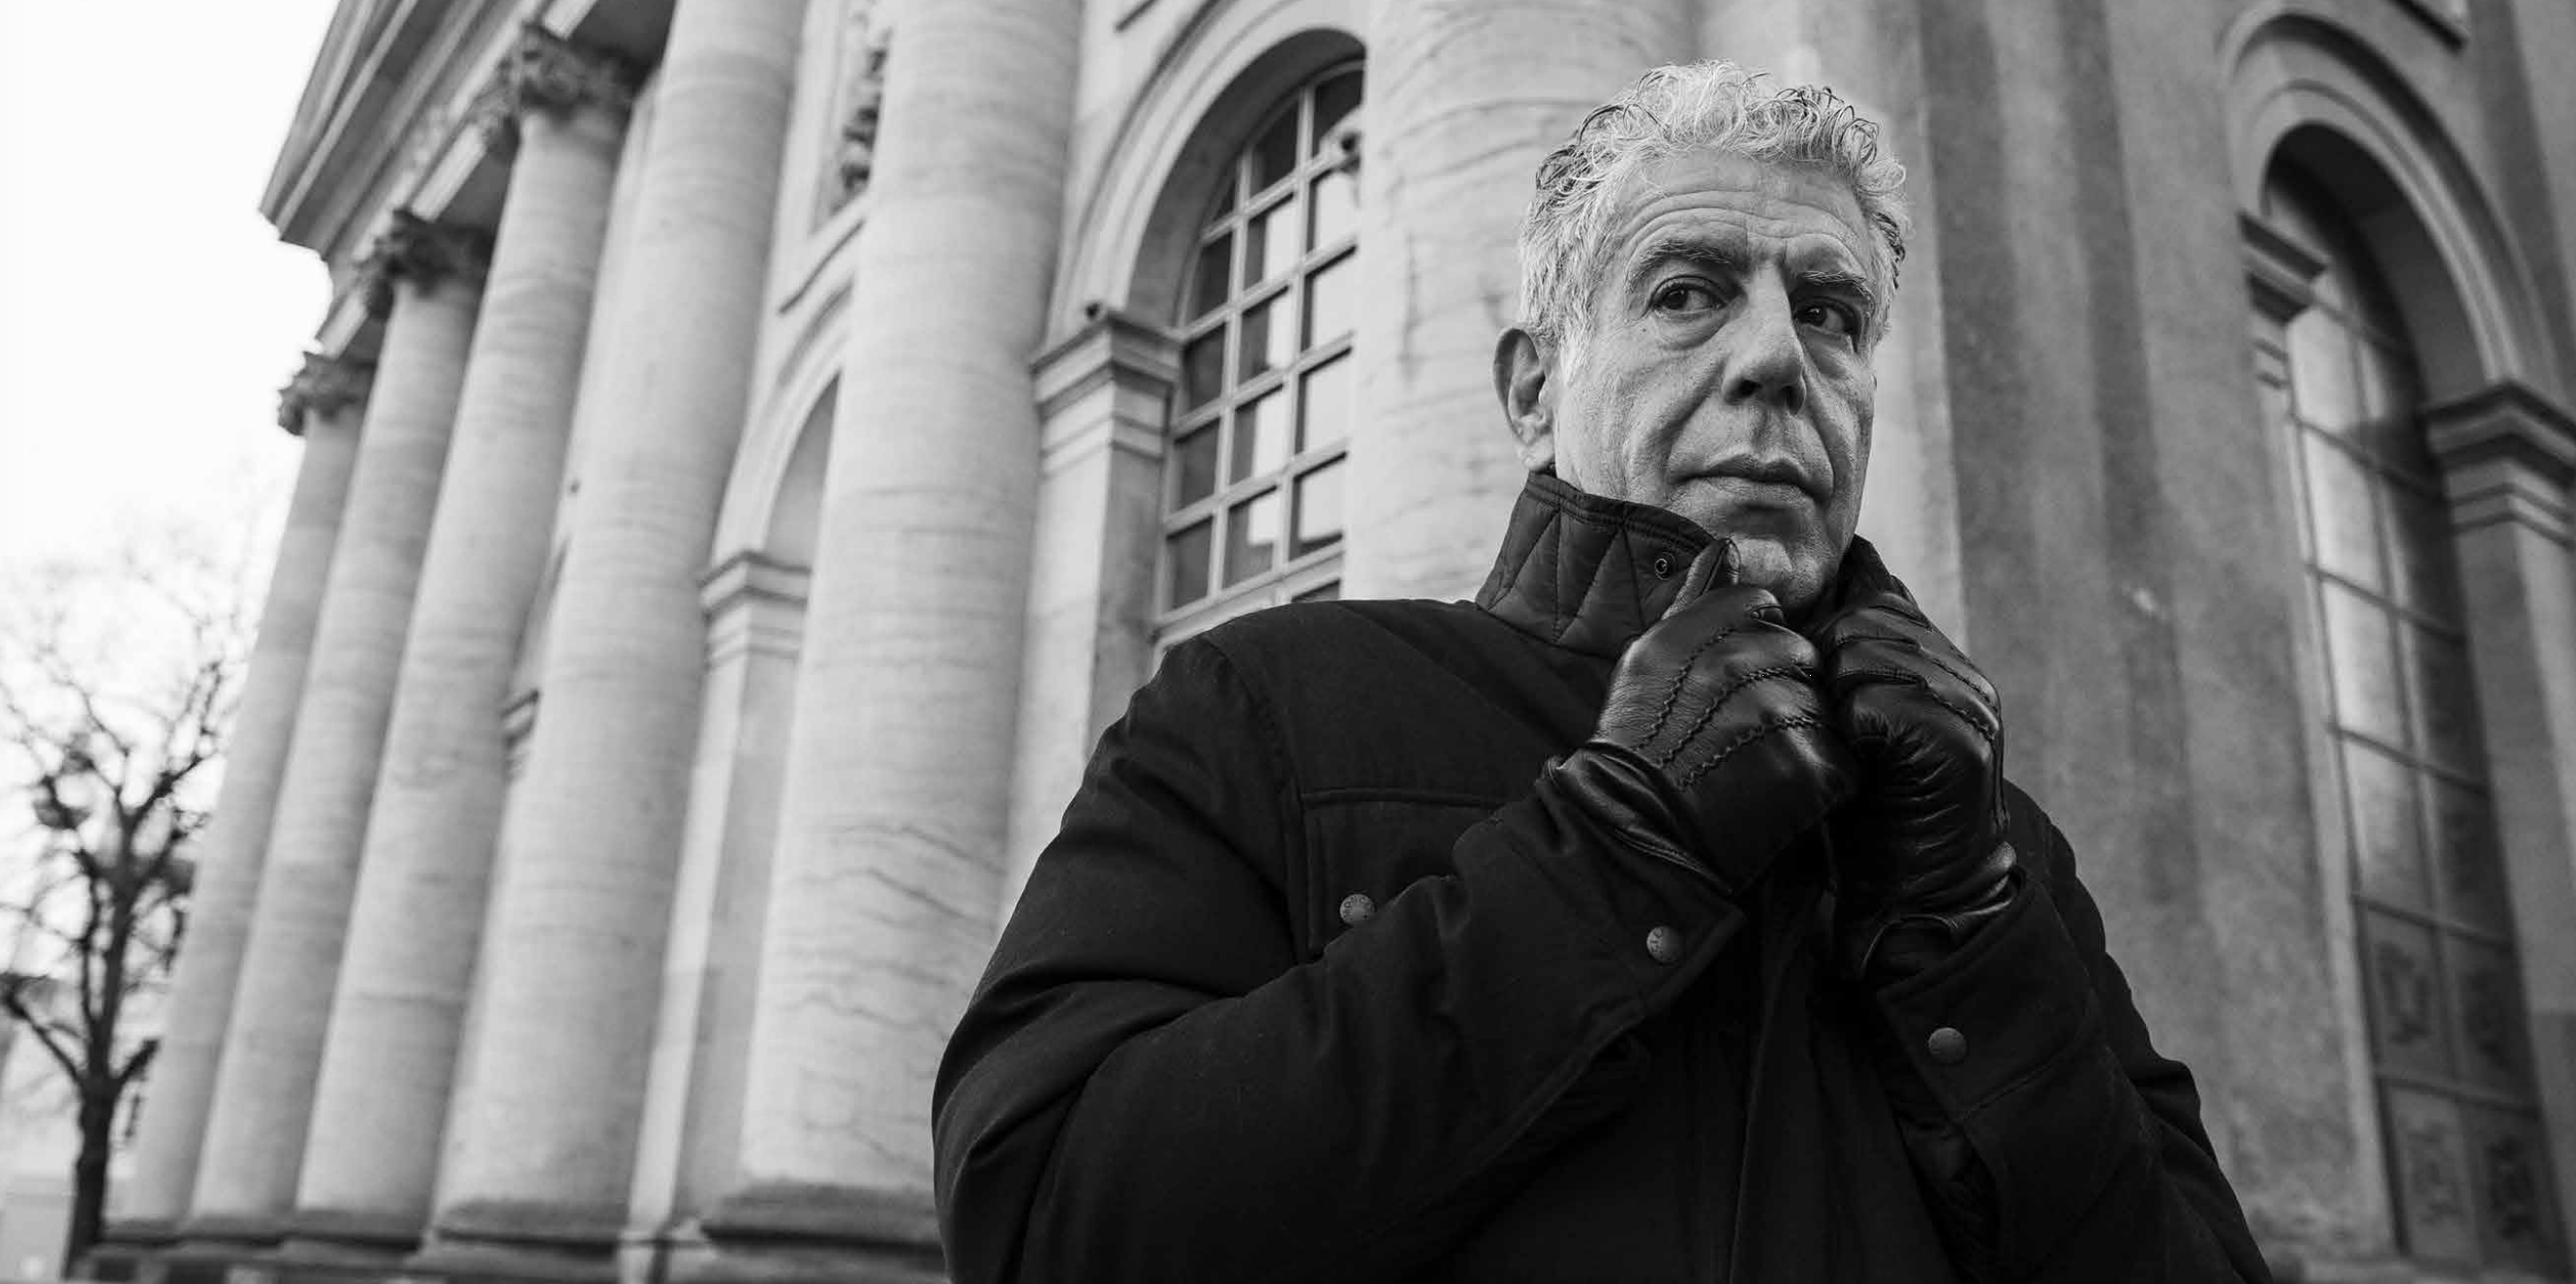 'Anthony Bourdain Remembered' Memorial Book Will Release May 28